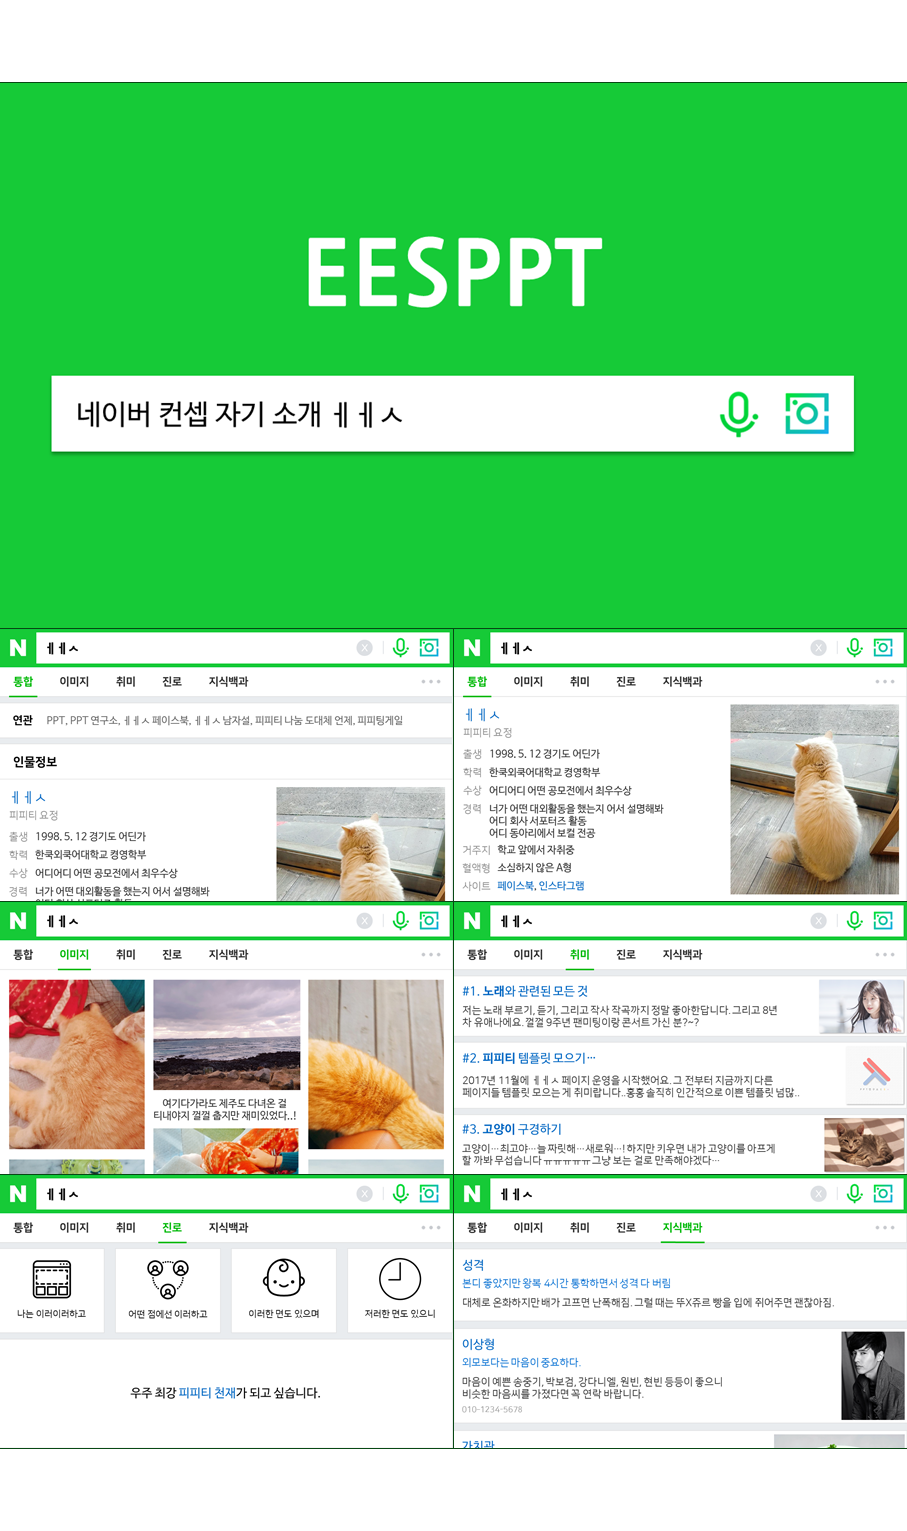 naver website ui design for powerpoint templates ees ppt templates